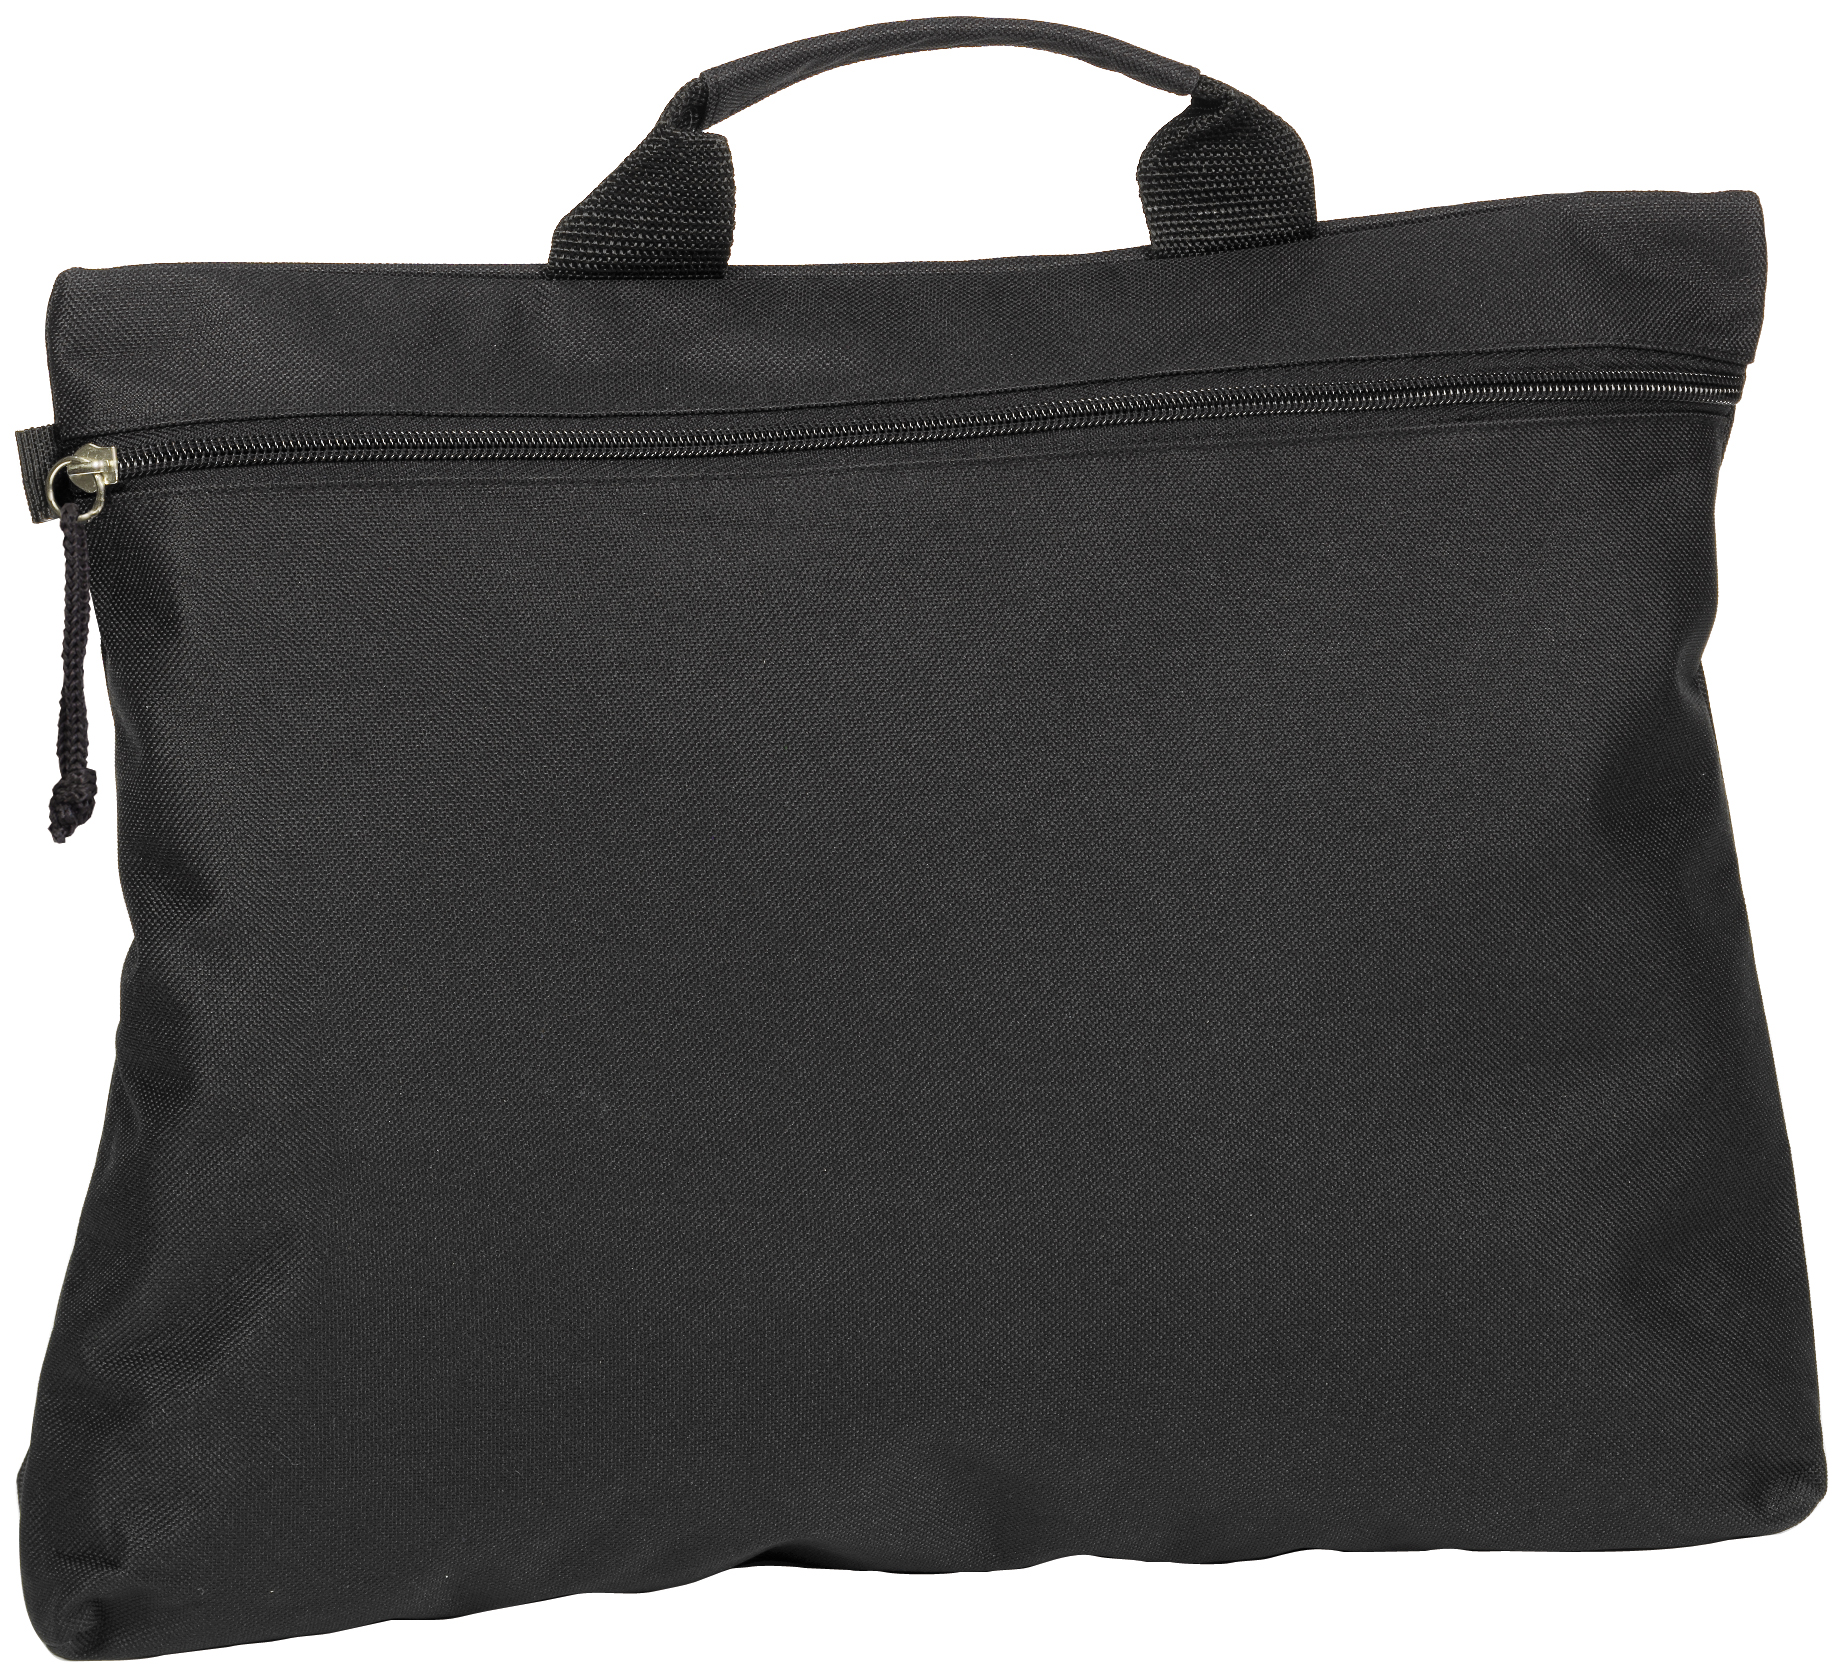 Promotional Swale Document Bag